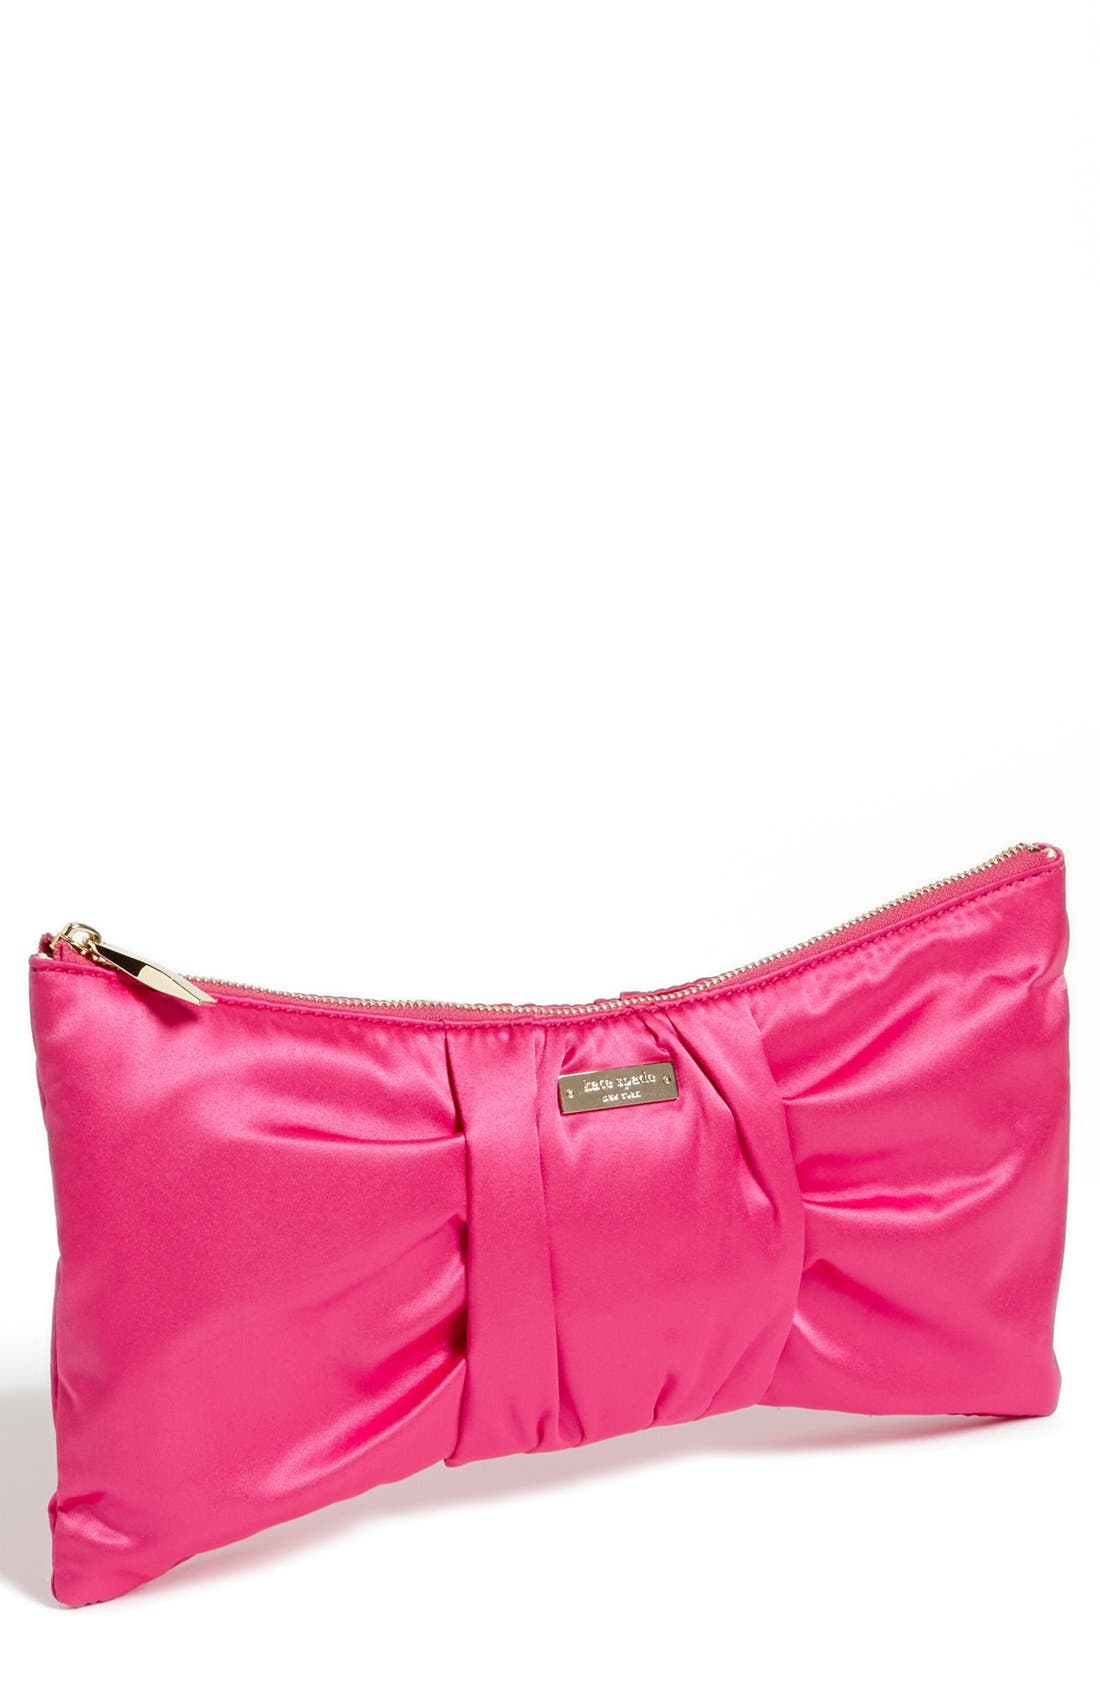 Alternate Image 1 Selected - kate spade new york 'evening belle - silka' clutch